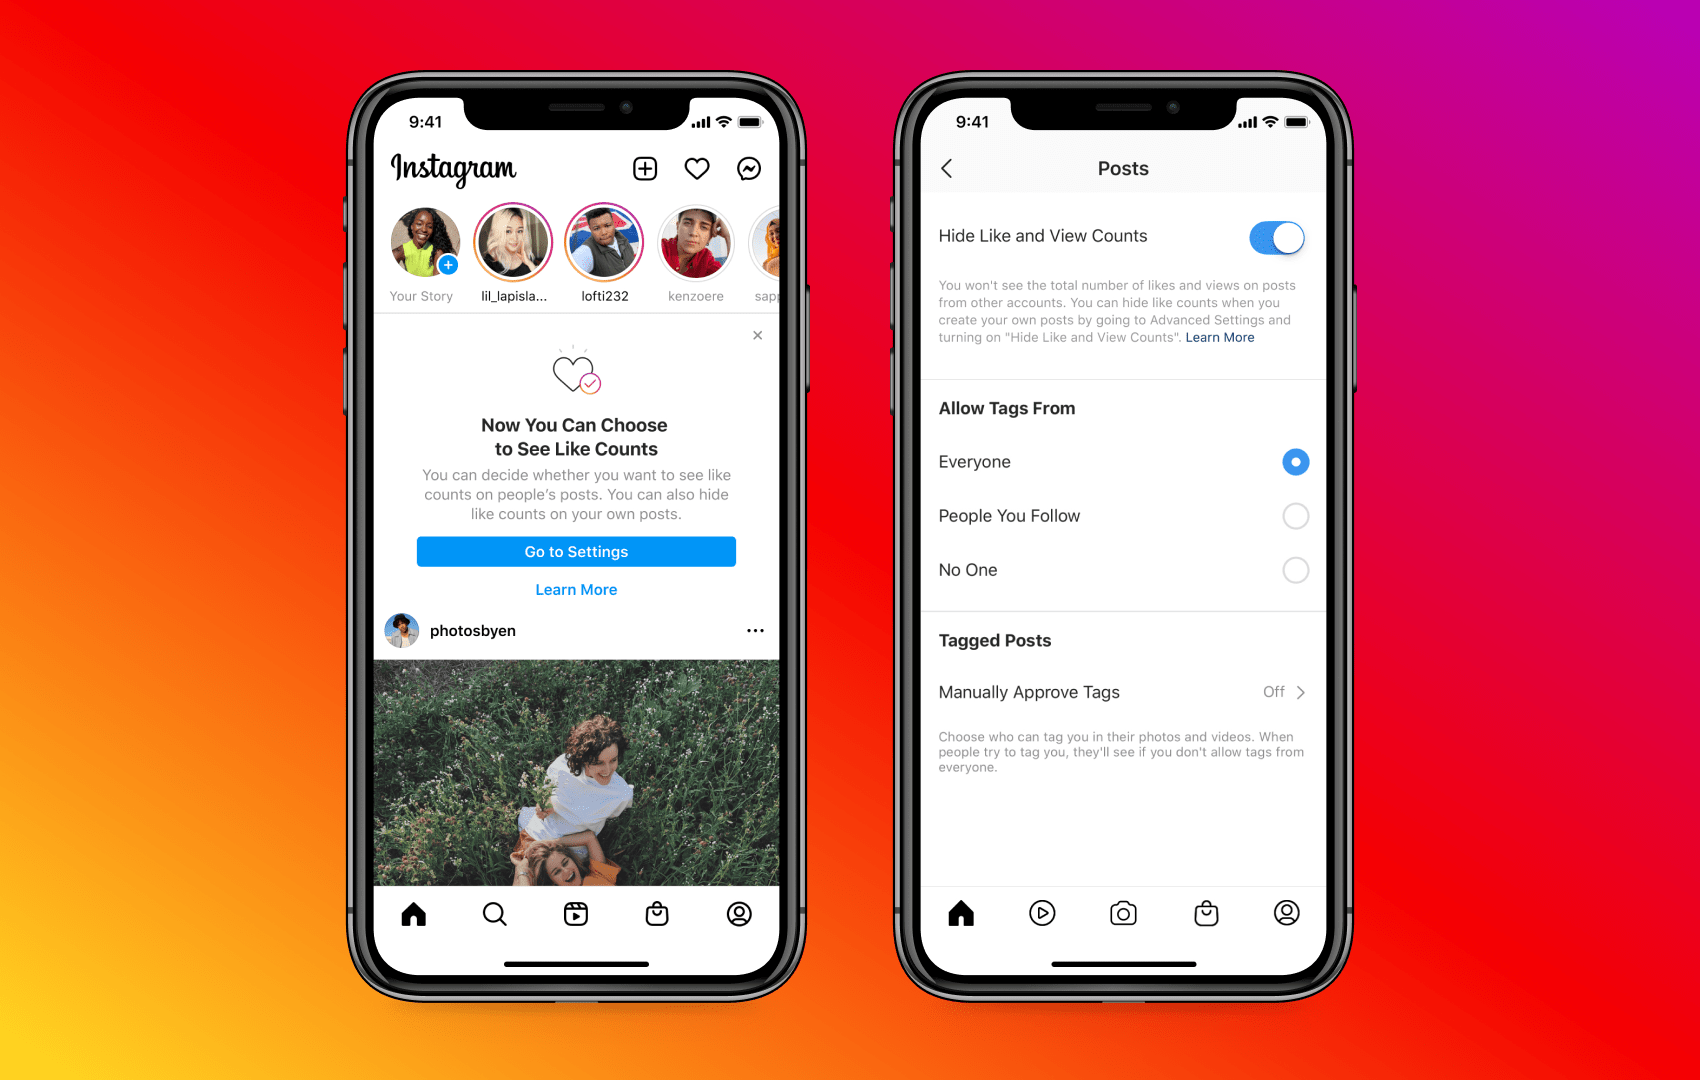 Instagram feature: How to hide like counts on your feed